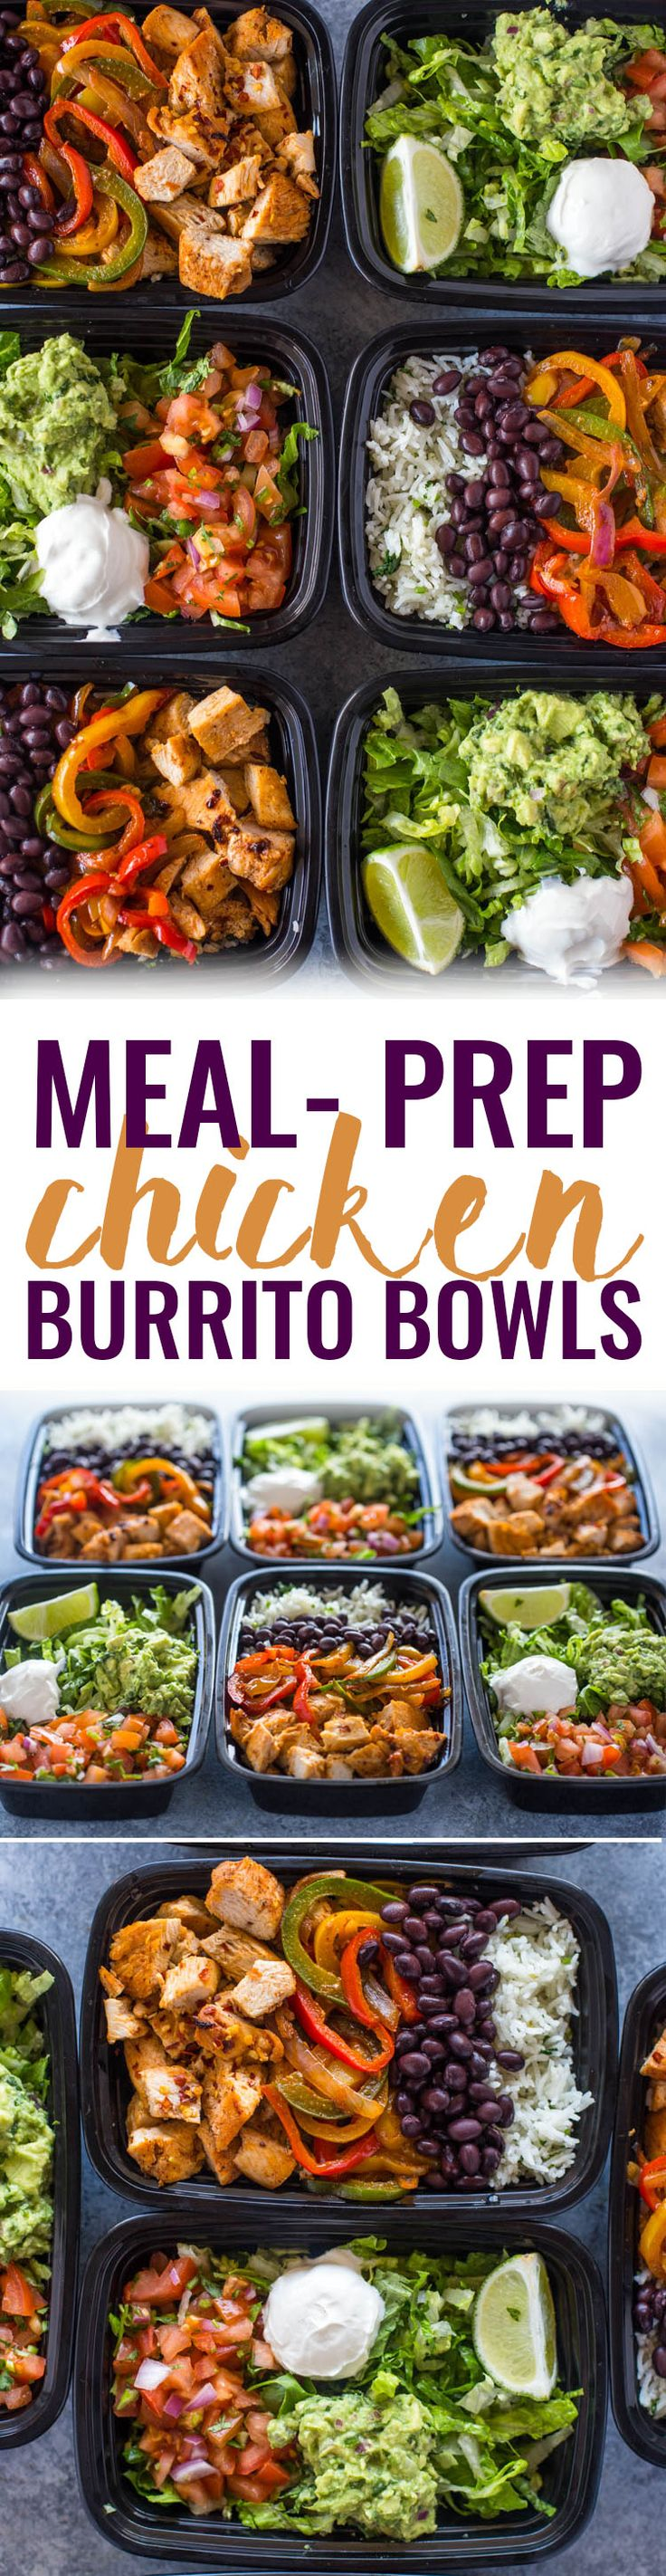 Meal-Prep Chicken Burrito Bowls 455 Calories